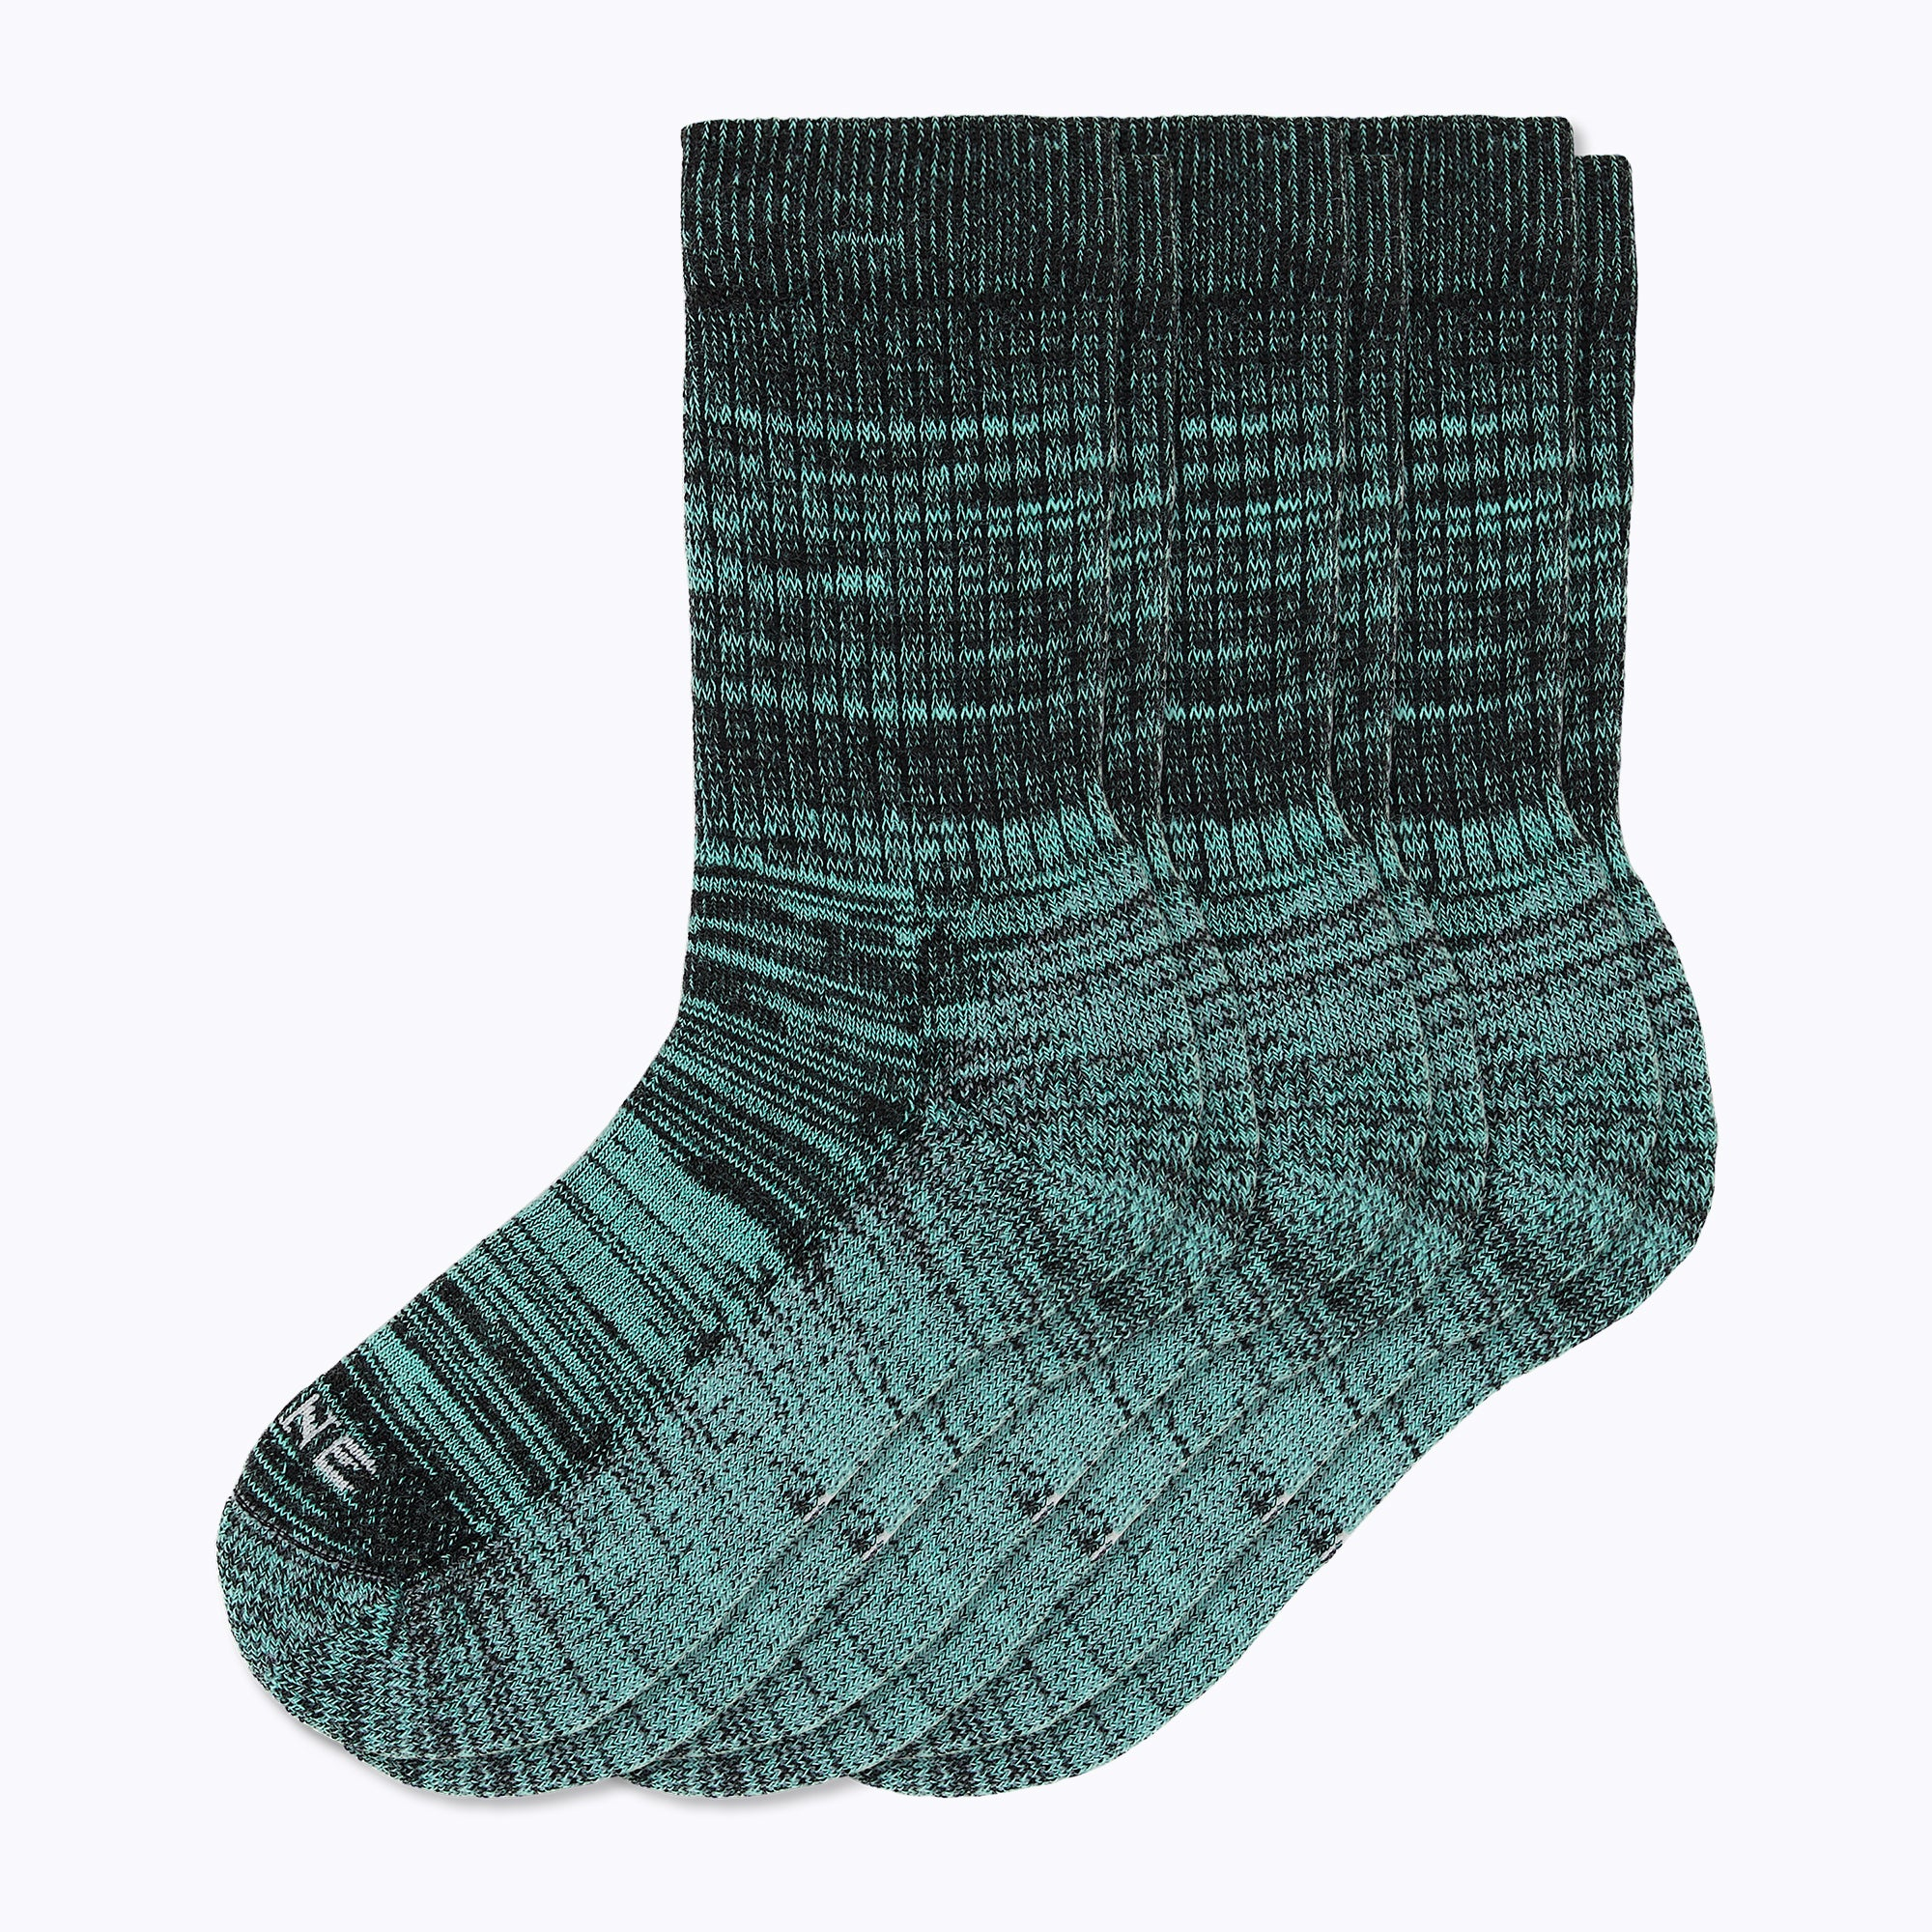 Kelsey 3 Pack Women's Crew Socks - Turq + Black by Canyon x Lane Socks